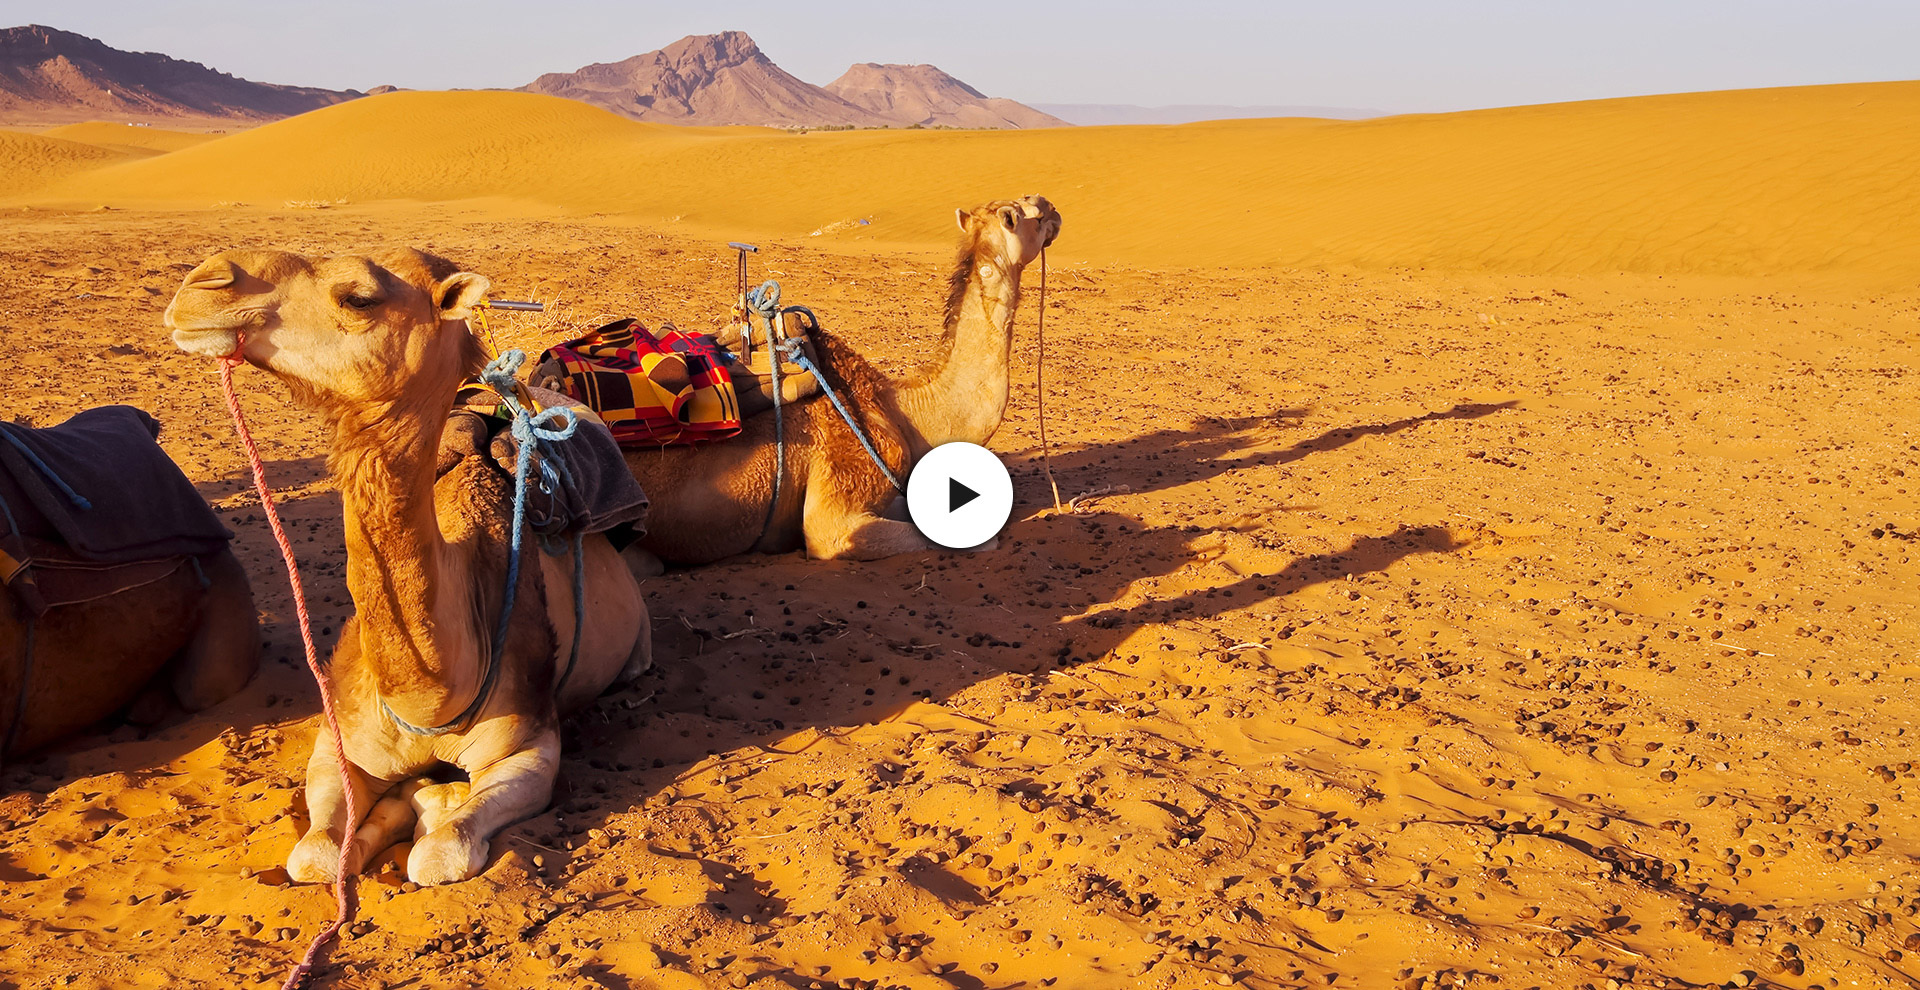 IMG-TLogitravel-Video-2-Marruecos